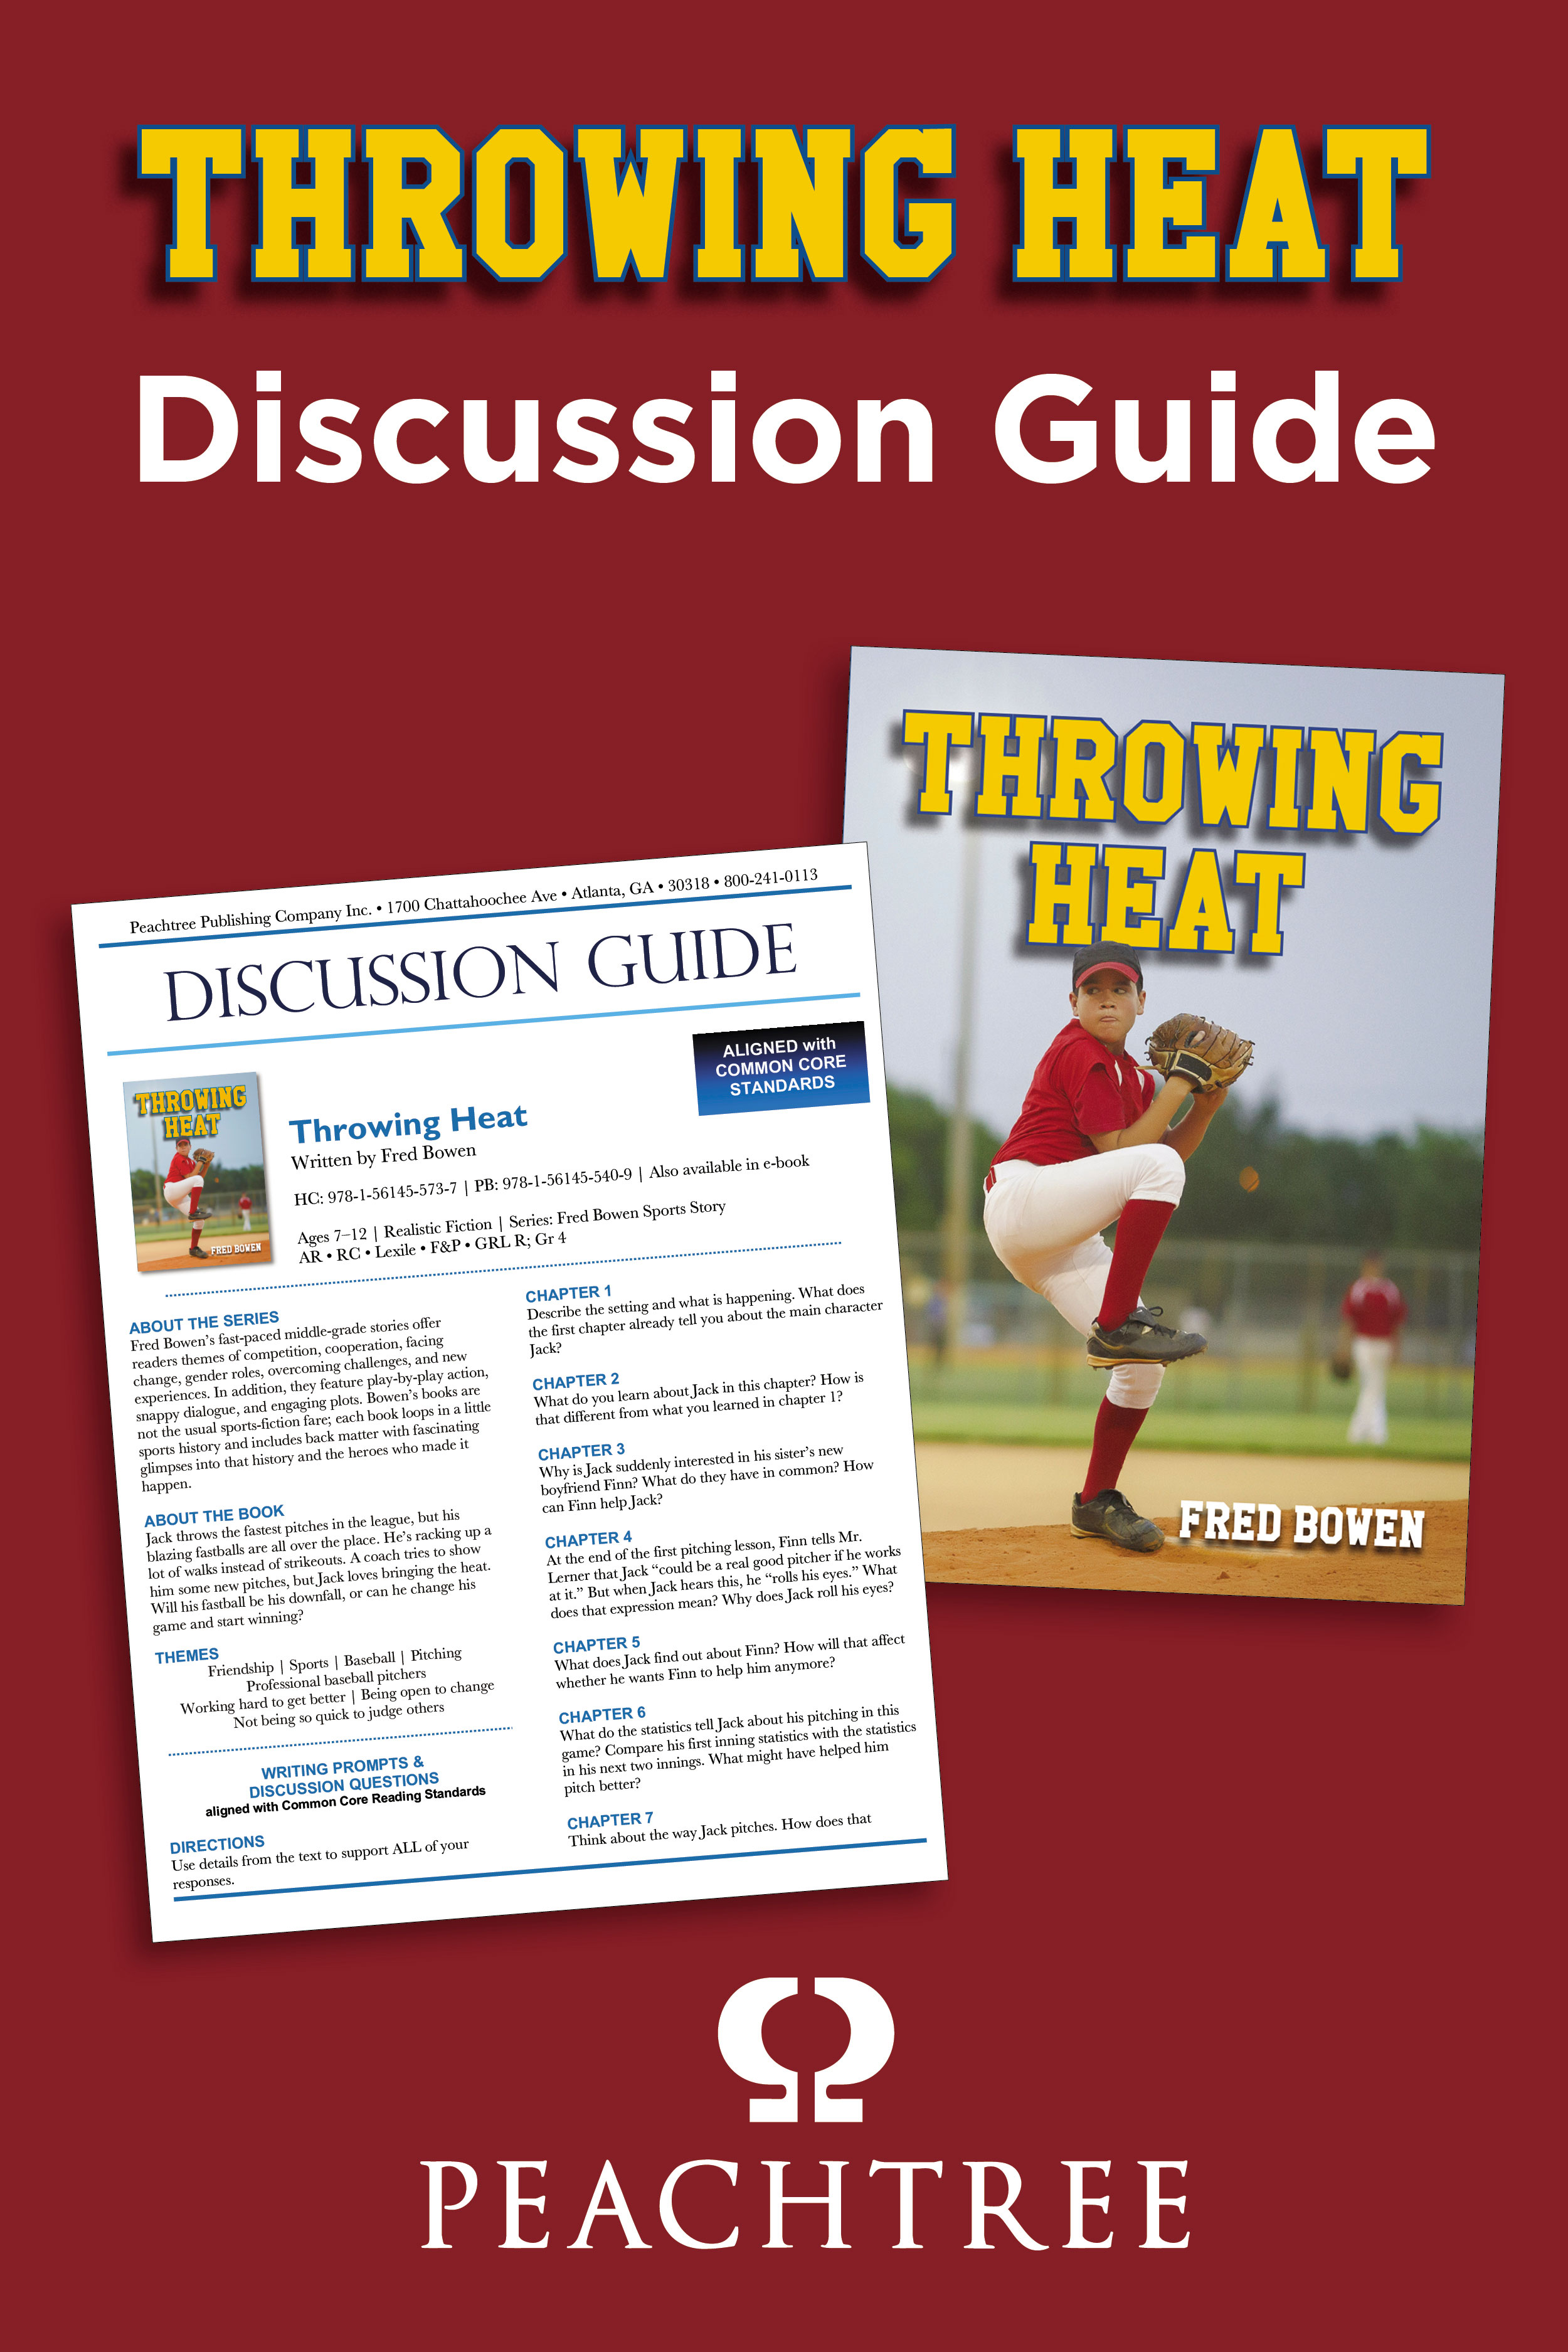 Throwing Heat Discussion Guide